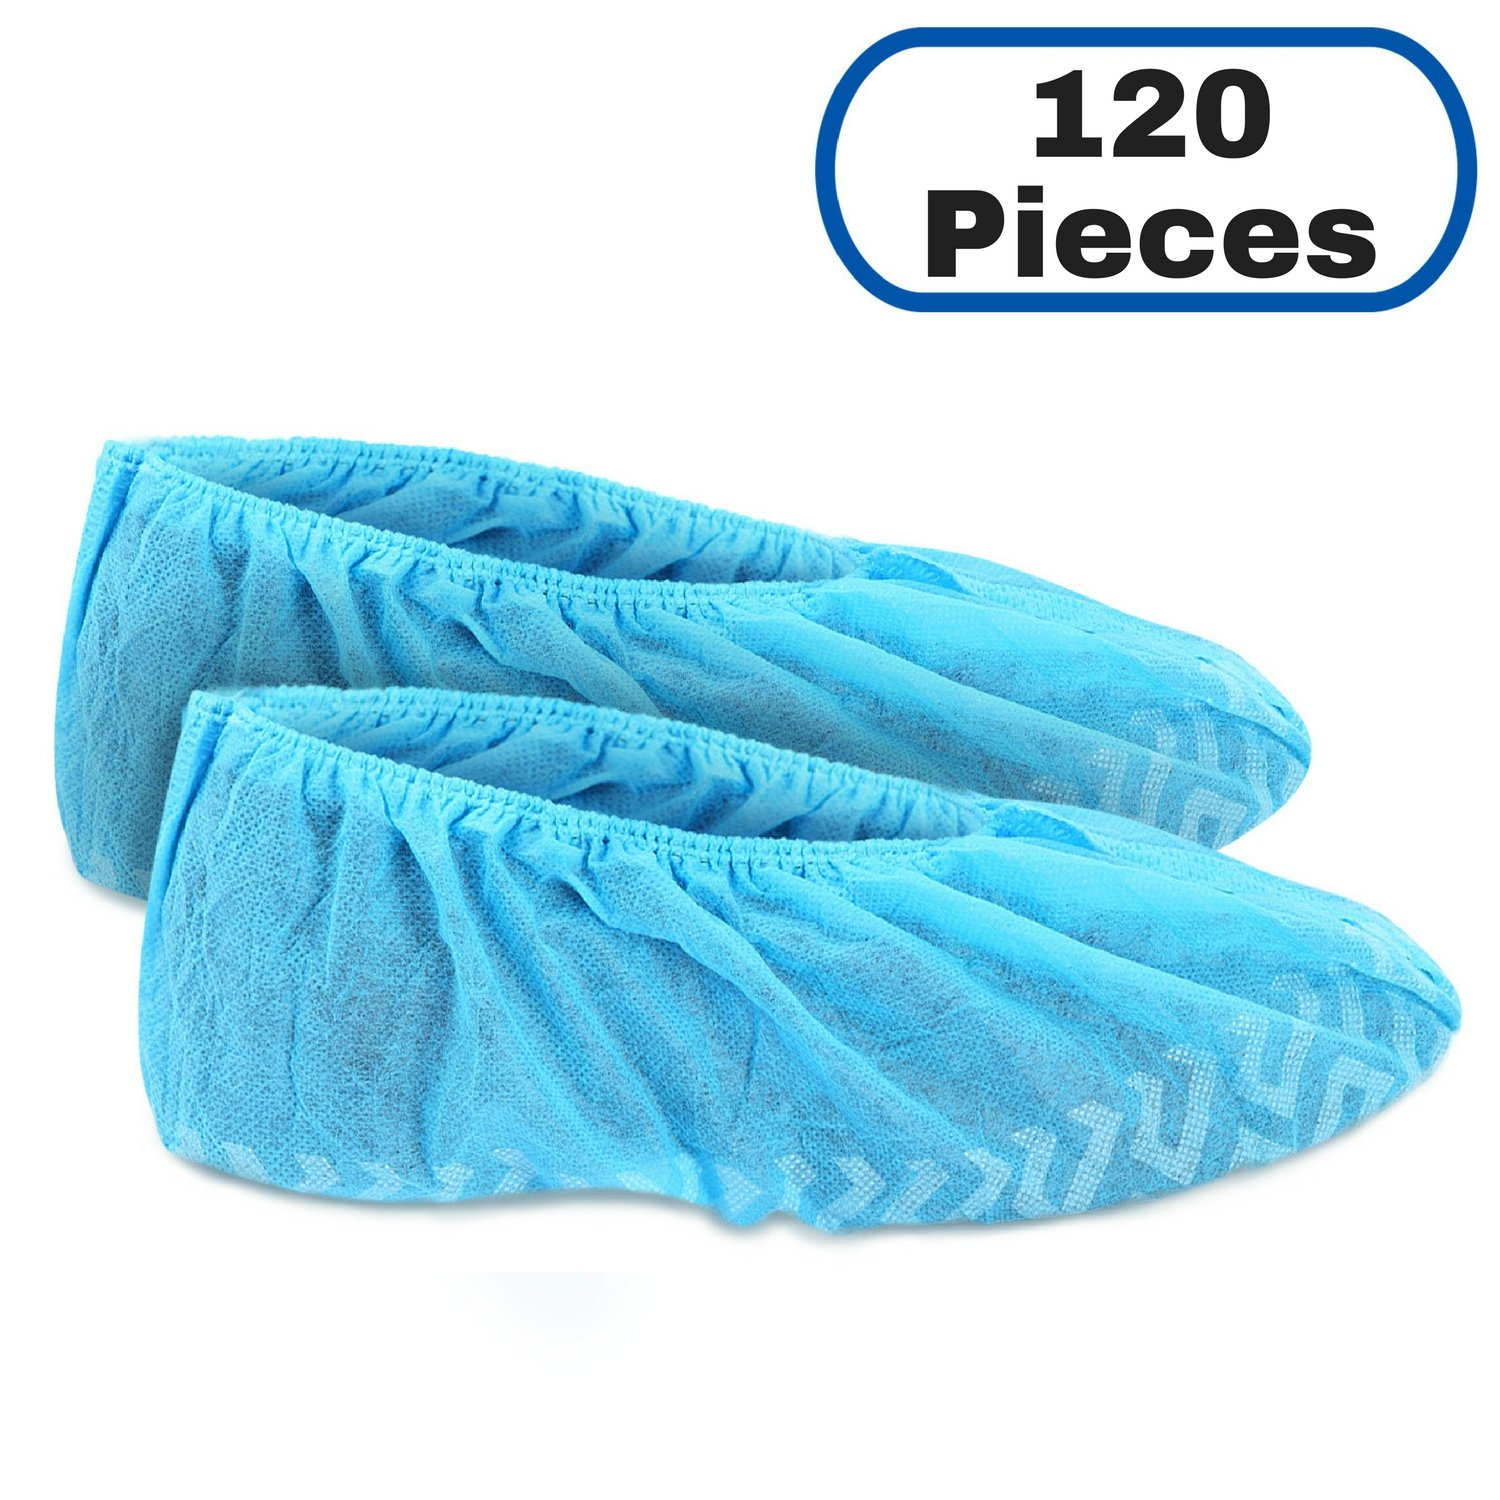 MIFFLIN Disposable Shoe Covers (Blue, 120 Pieces) Durable Boot Covers, Non-Slip Polypropylene, One Size Fits Most by MIFFLIN (Image #1)